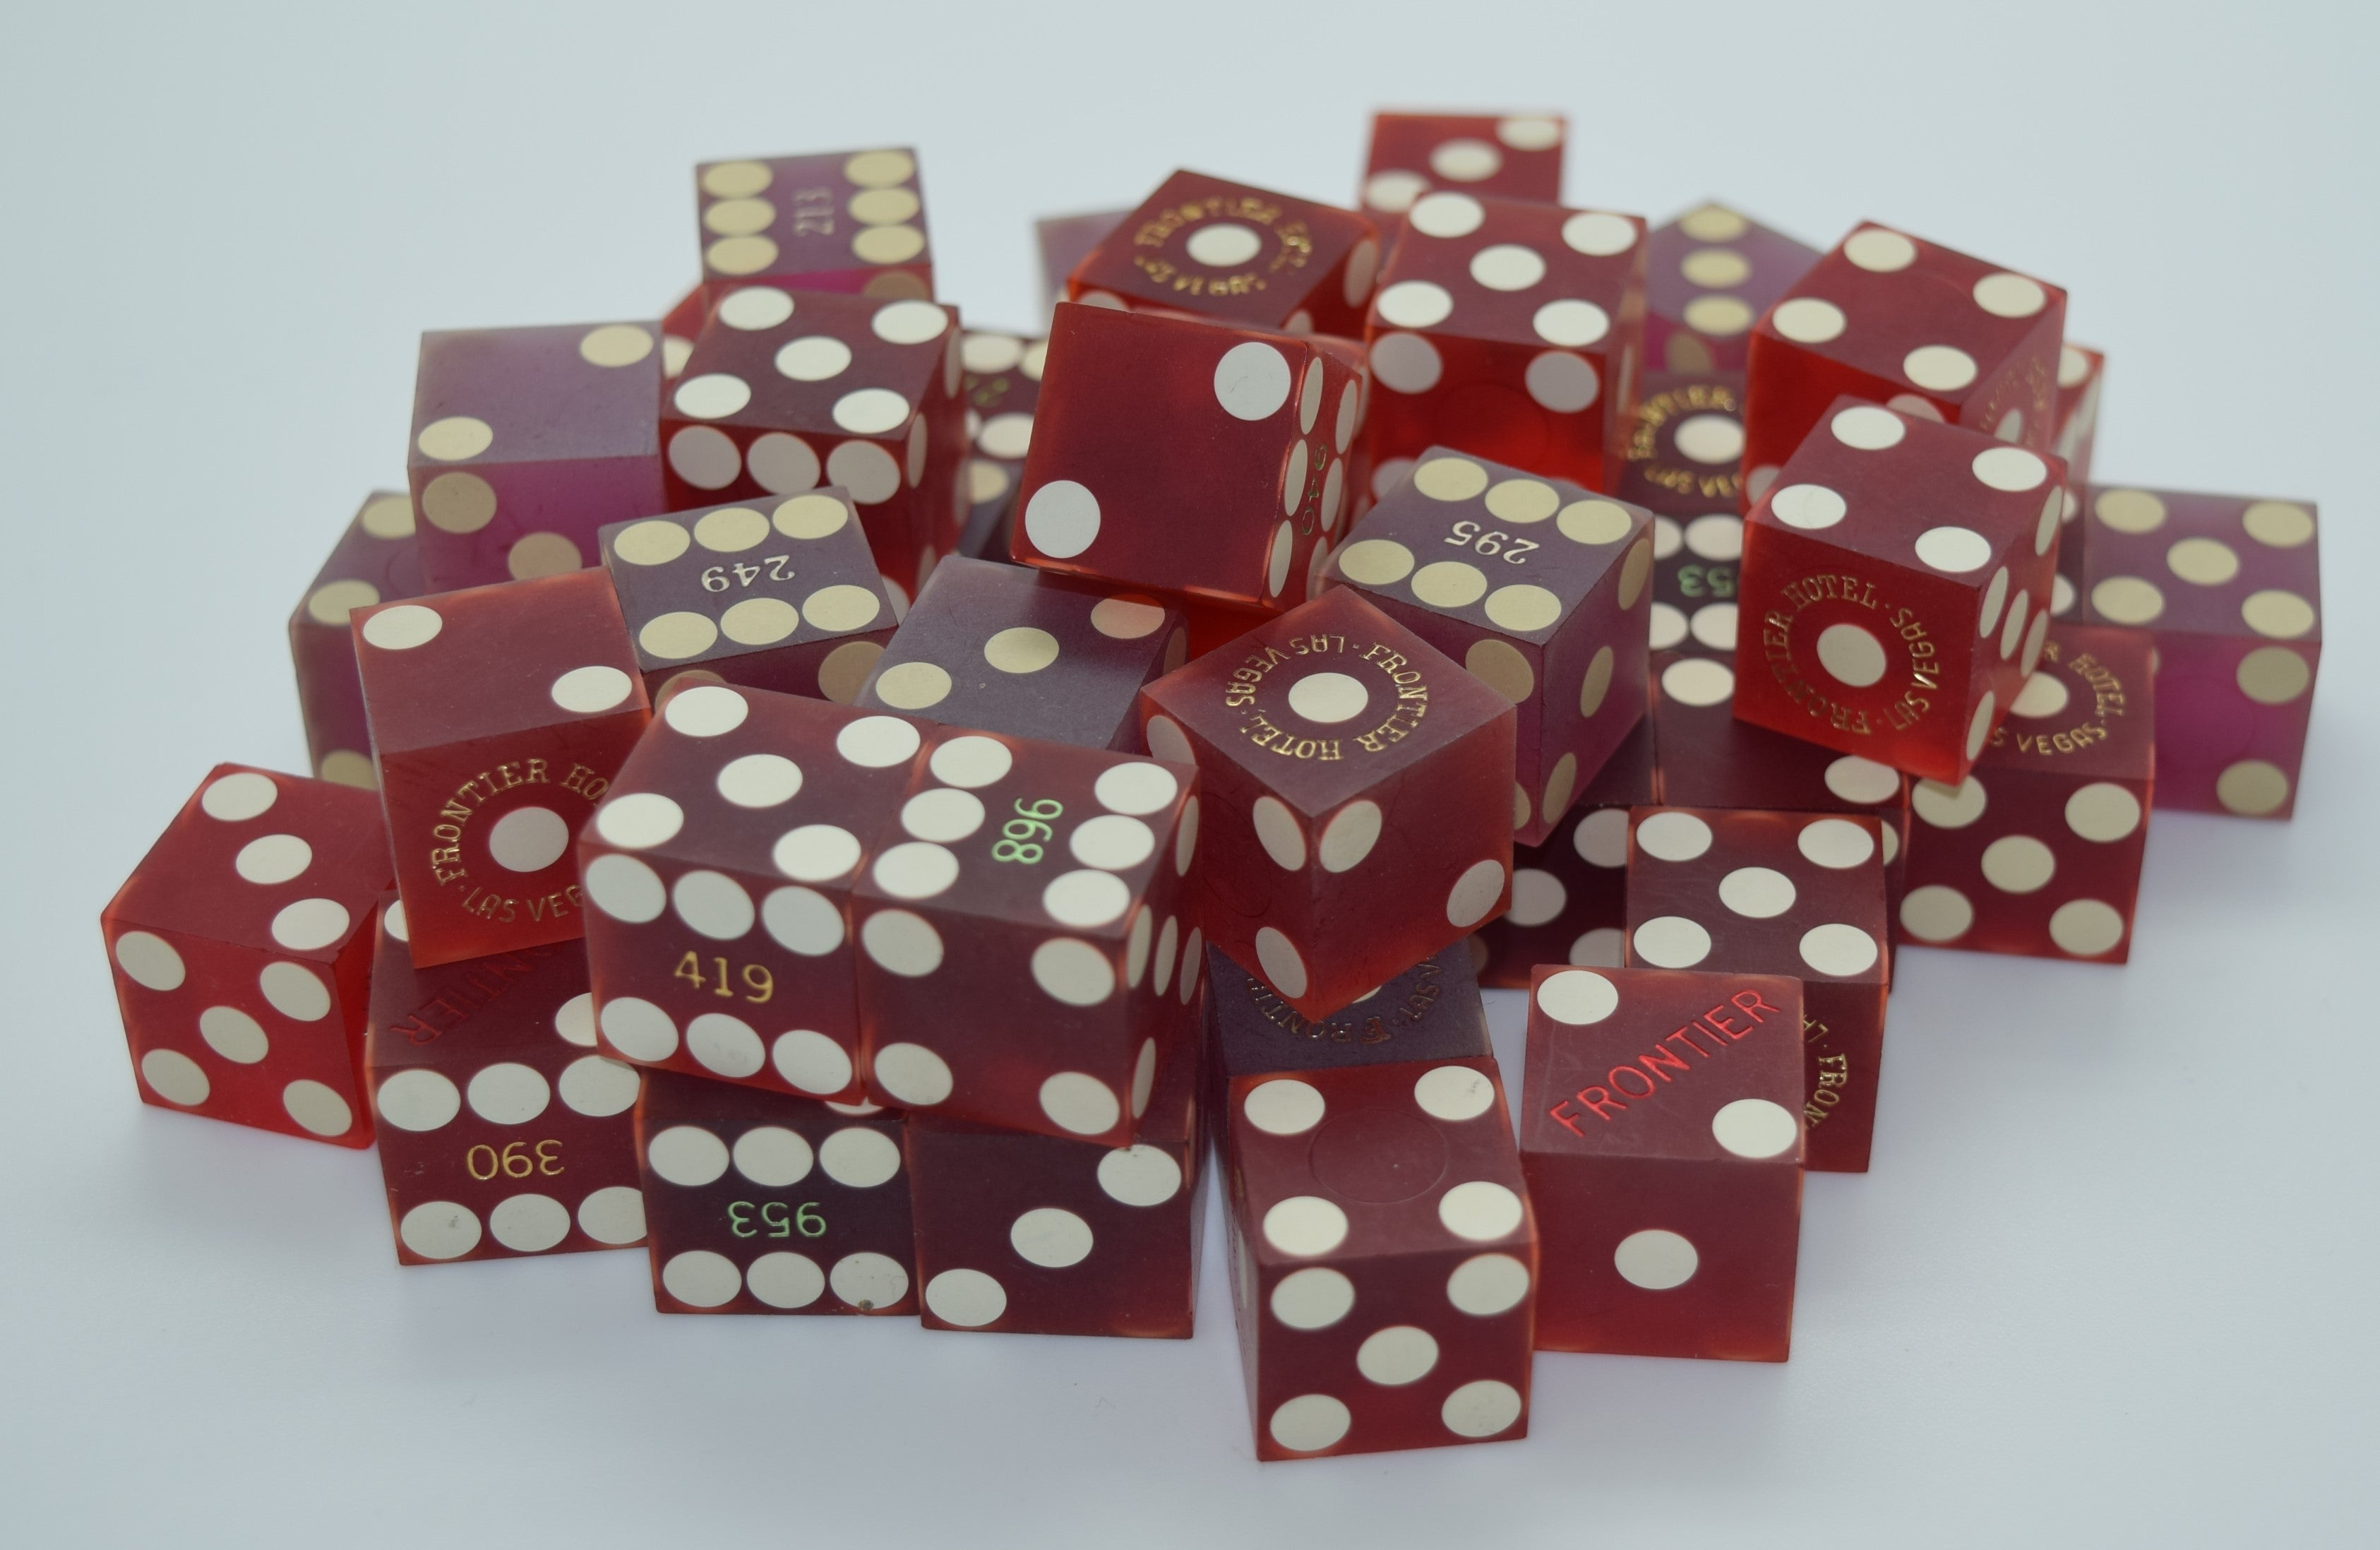 Bulk Dice 50 Used Dice From The Frontier Casino in Las Vegas Nevada